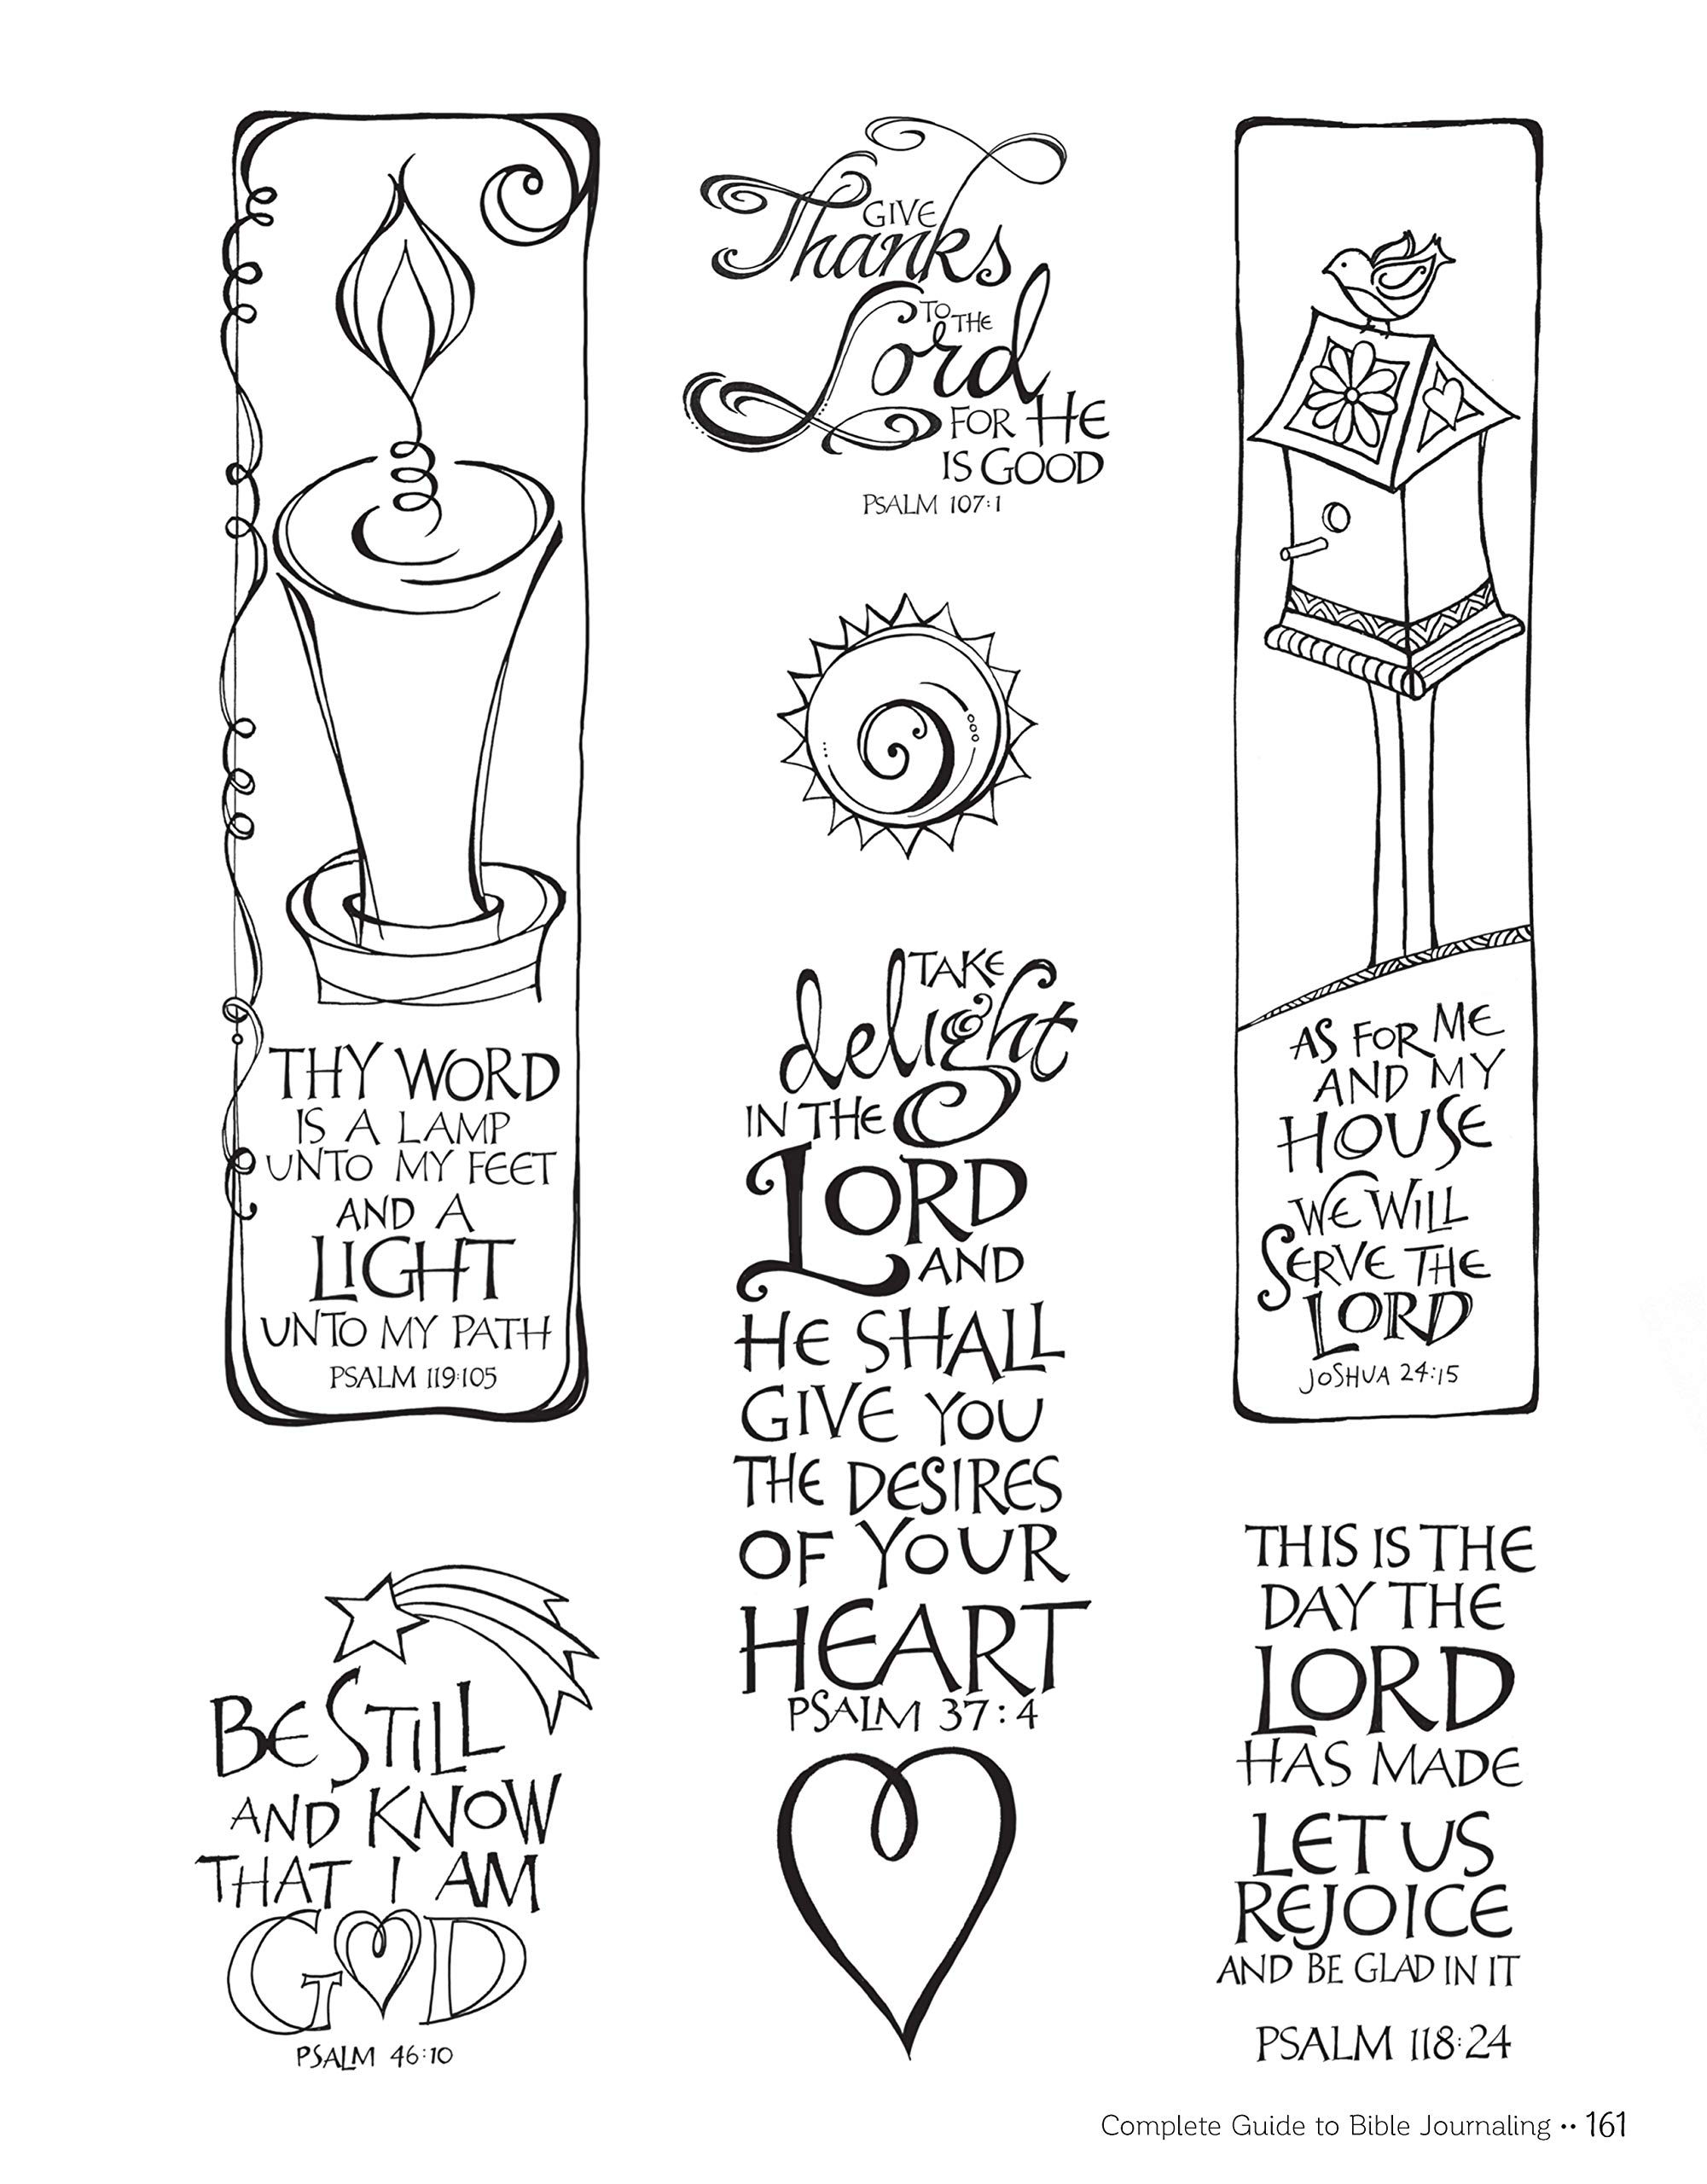 Complete Guide To Bible Journaling Creative Techniques To Express Your Faith Design Originals Includes 270 Stickers 150 Designs On Perforated Pages And 60 Designs On Translucent Sheets Of Vellum Joanne Fink Regina